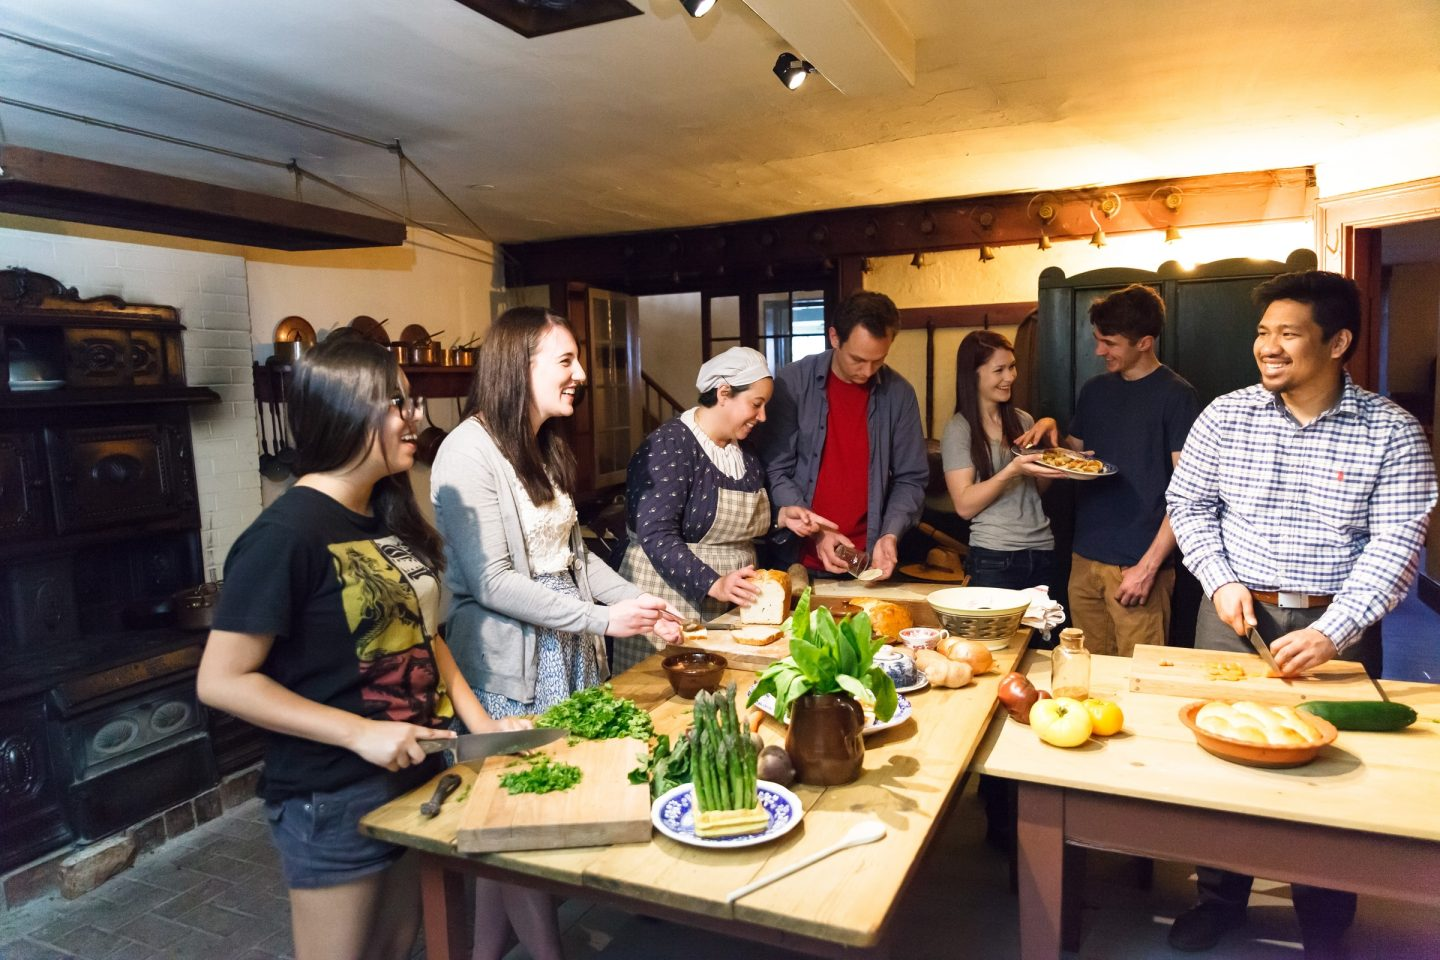 MacNab's Kitchen at Dundurn Enhanced Experience